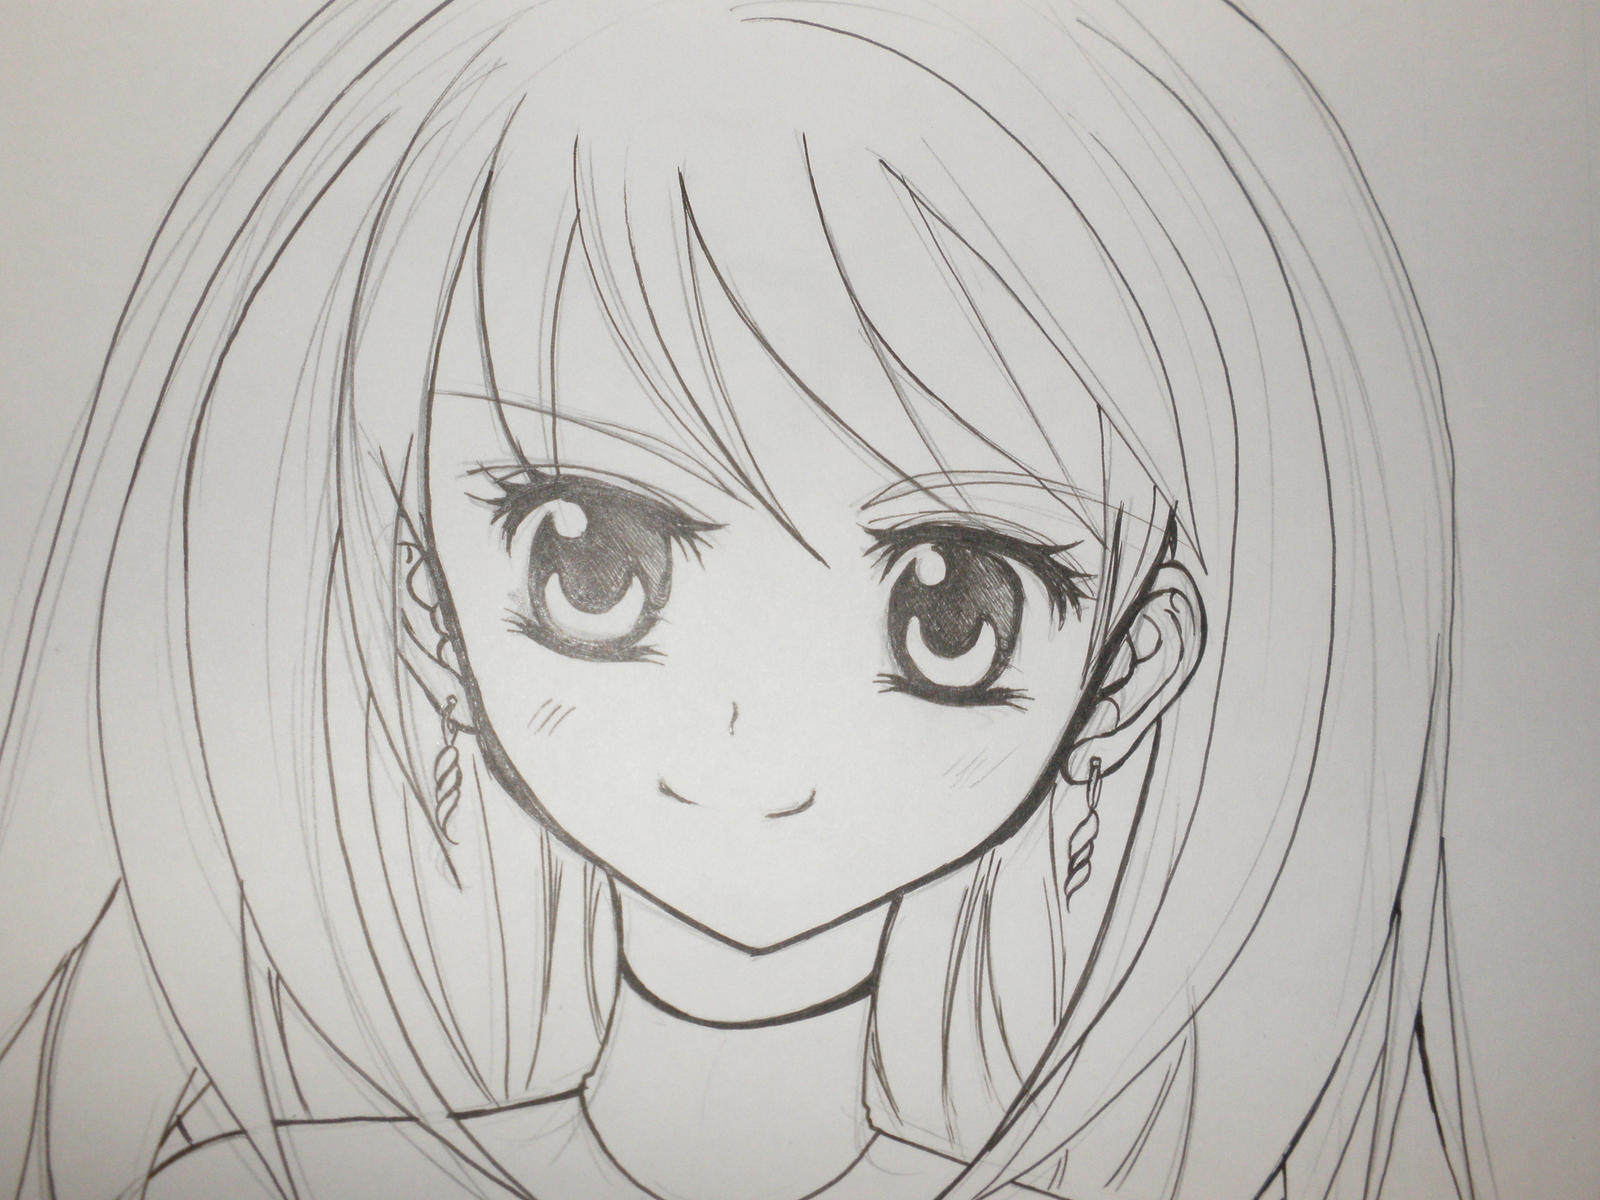 Sitting down girl 3 by alessia chan on deviantart for How to draw a girl looking down